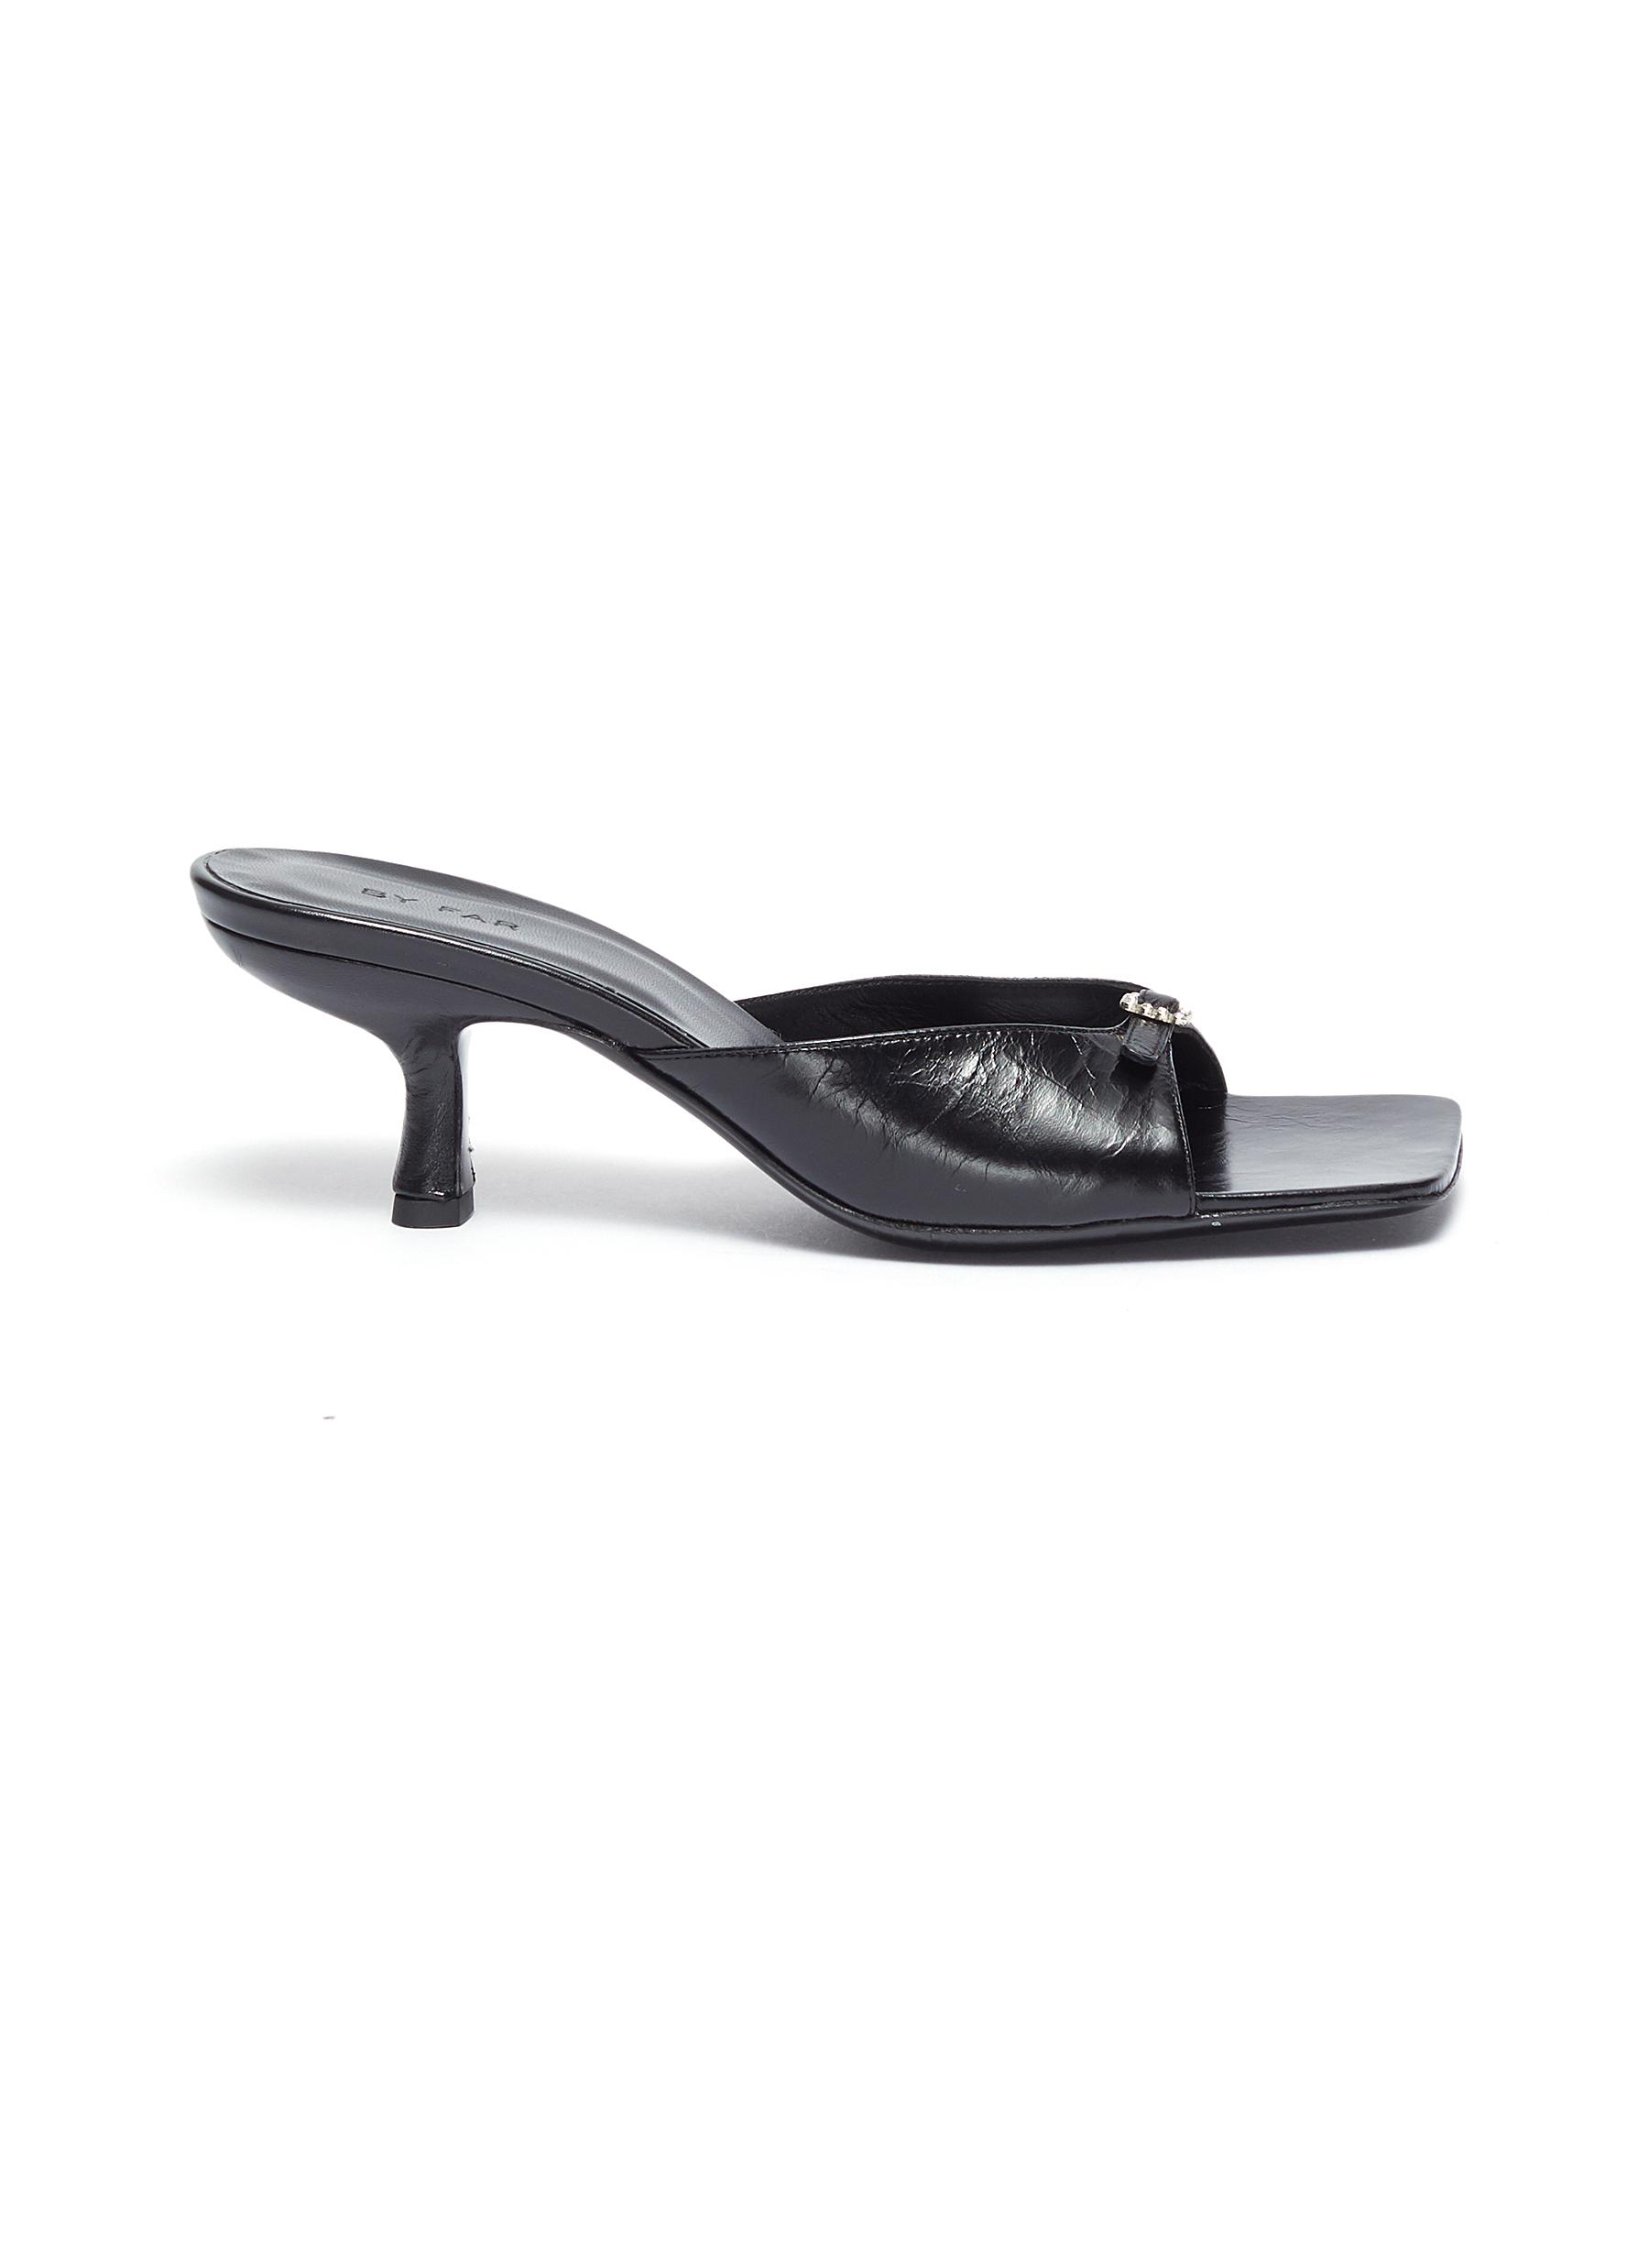 Erin' buckle band square toe mules